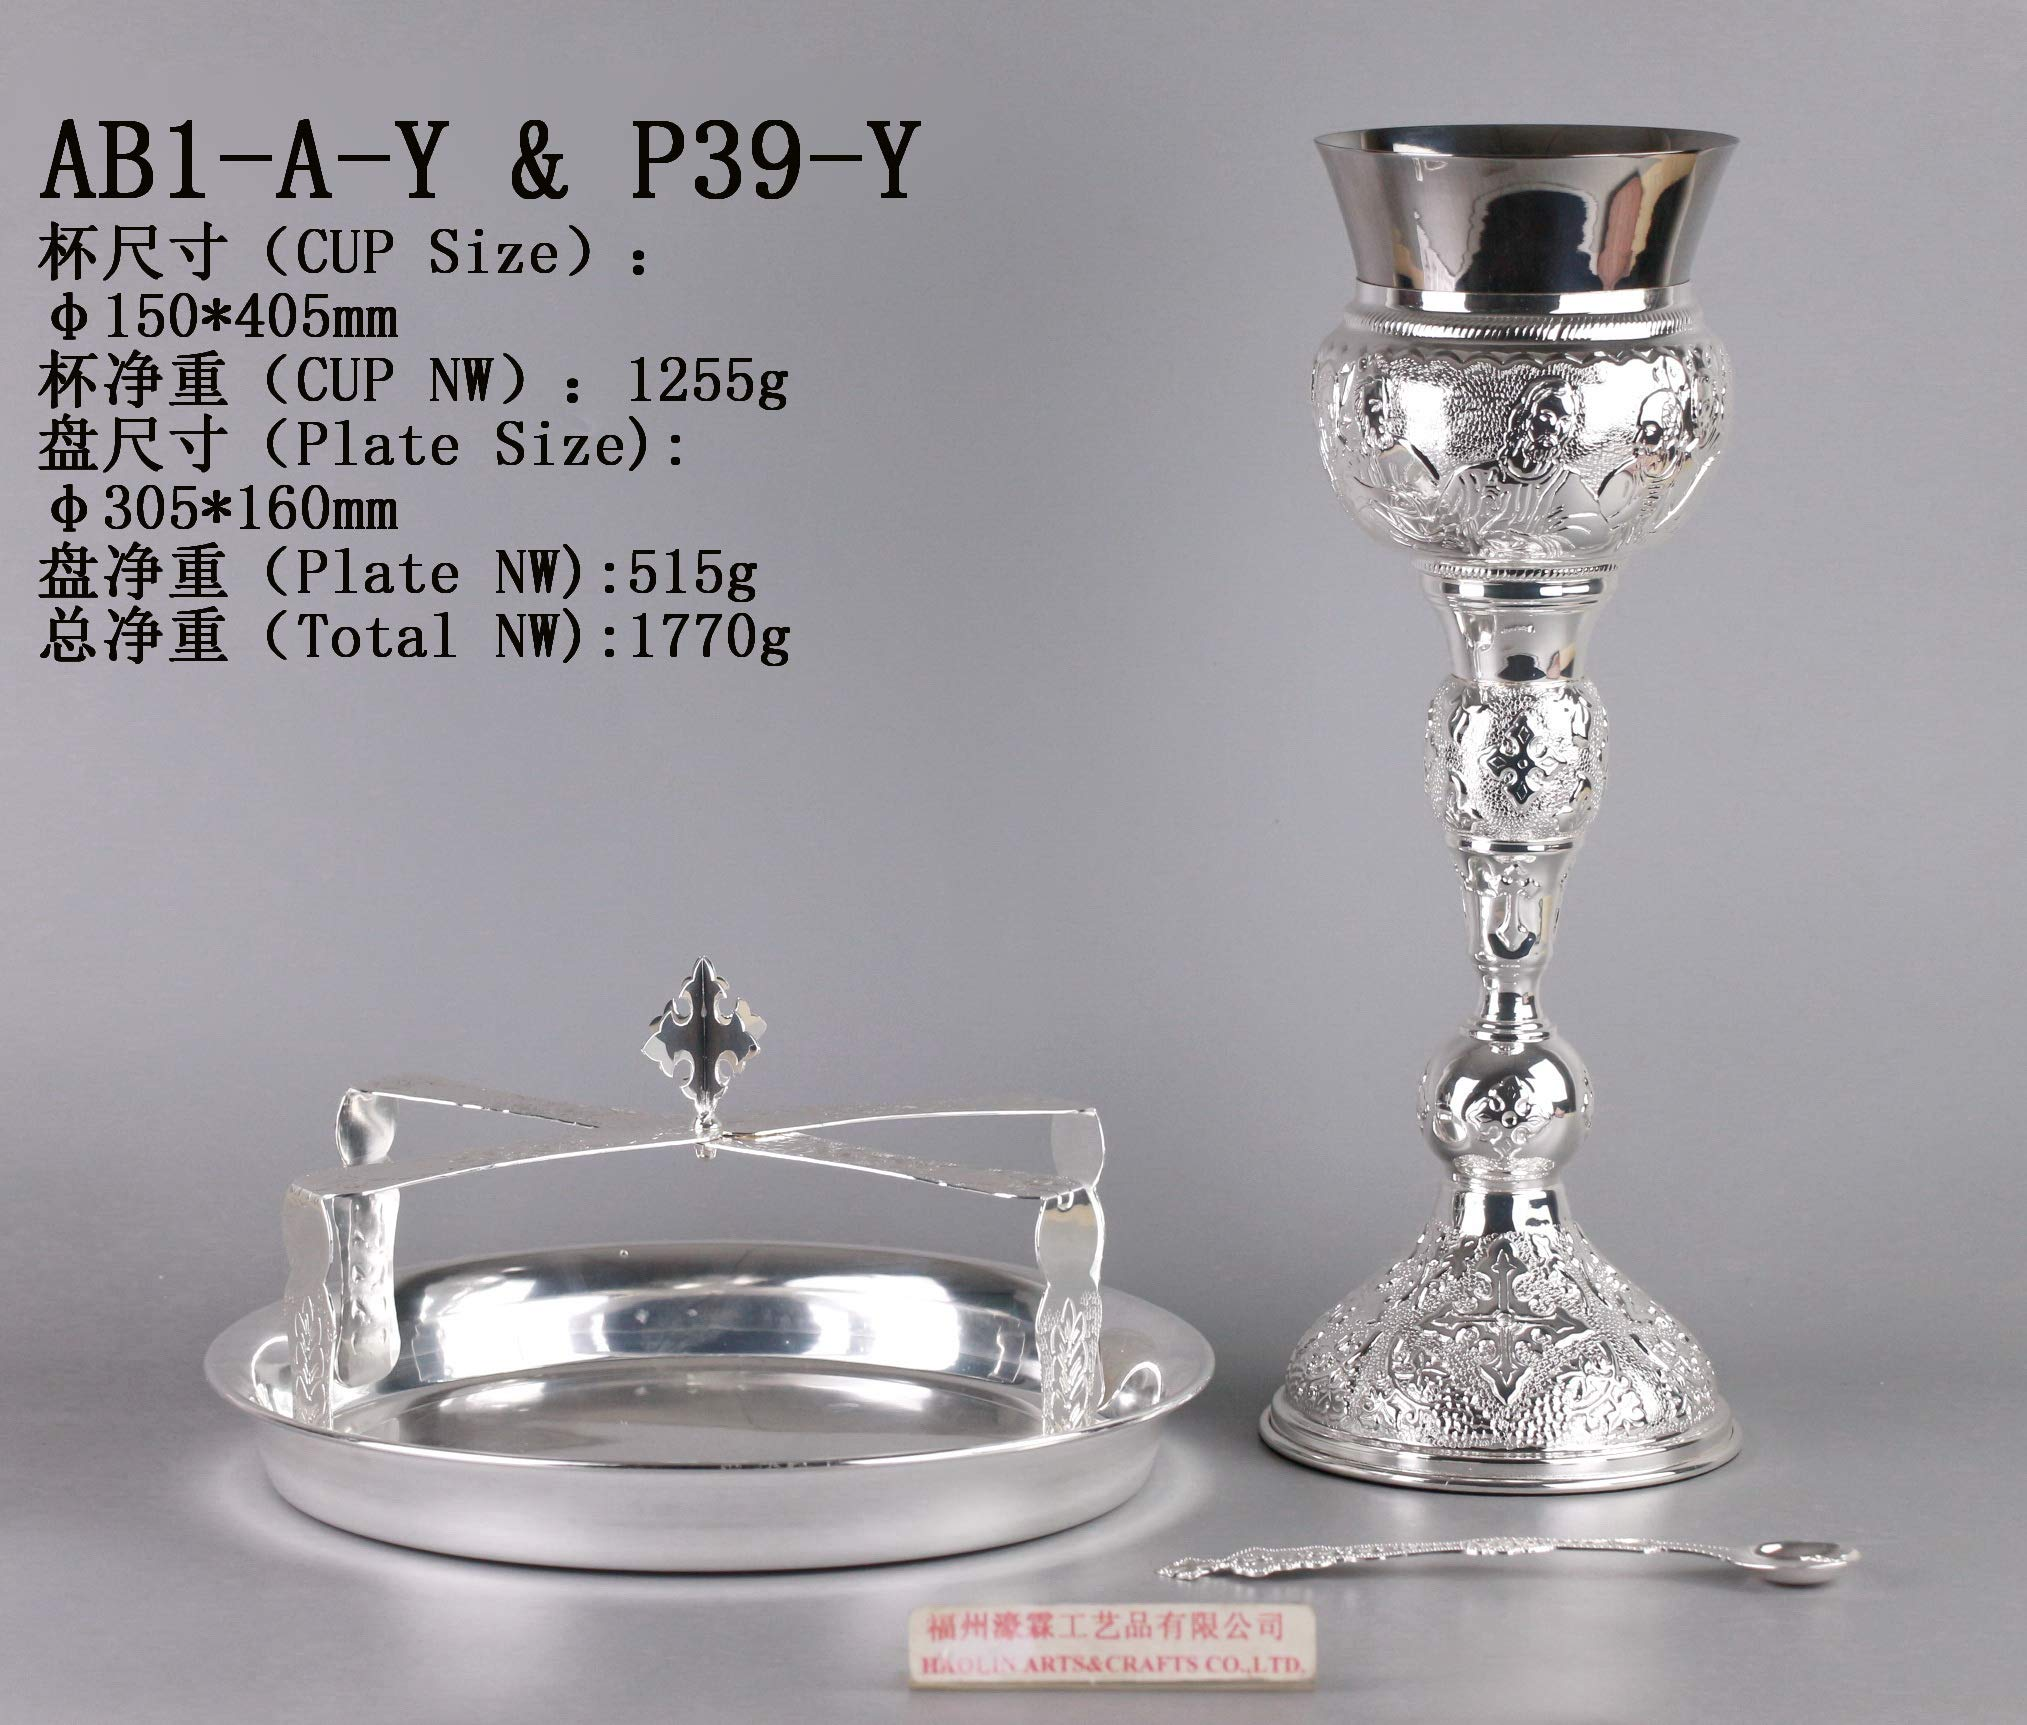 Brass Chalice Cup and Plate Altar Religion AB1-A-Y & P39-Y Our Company Have 101 Kinds of Chalice and Plate for Your Choice.